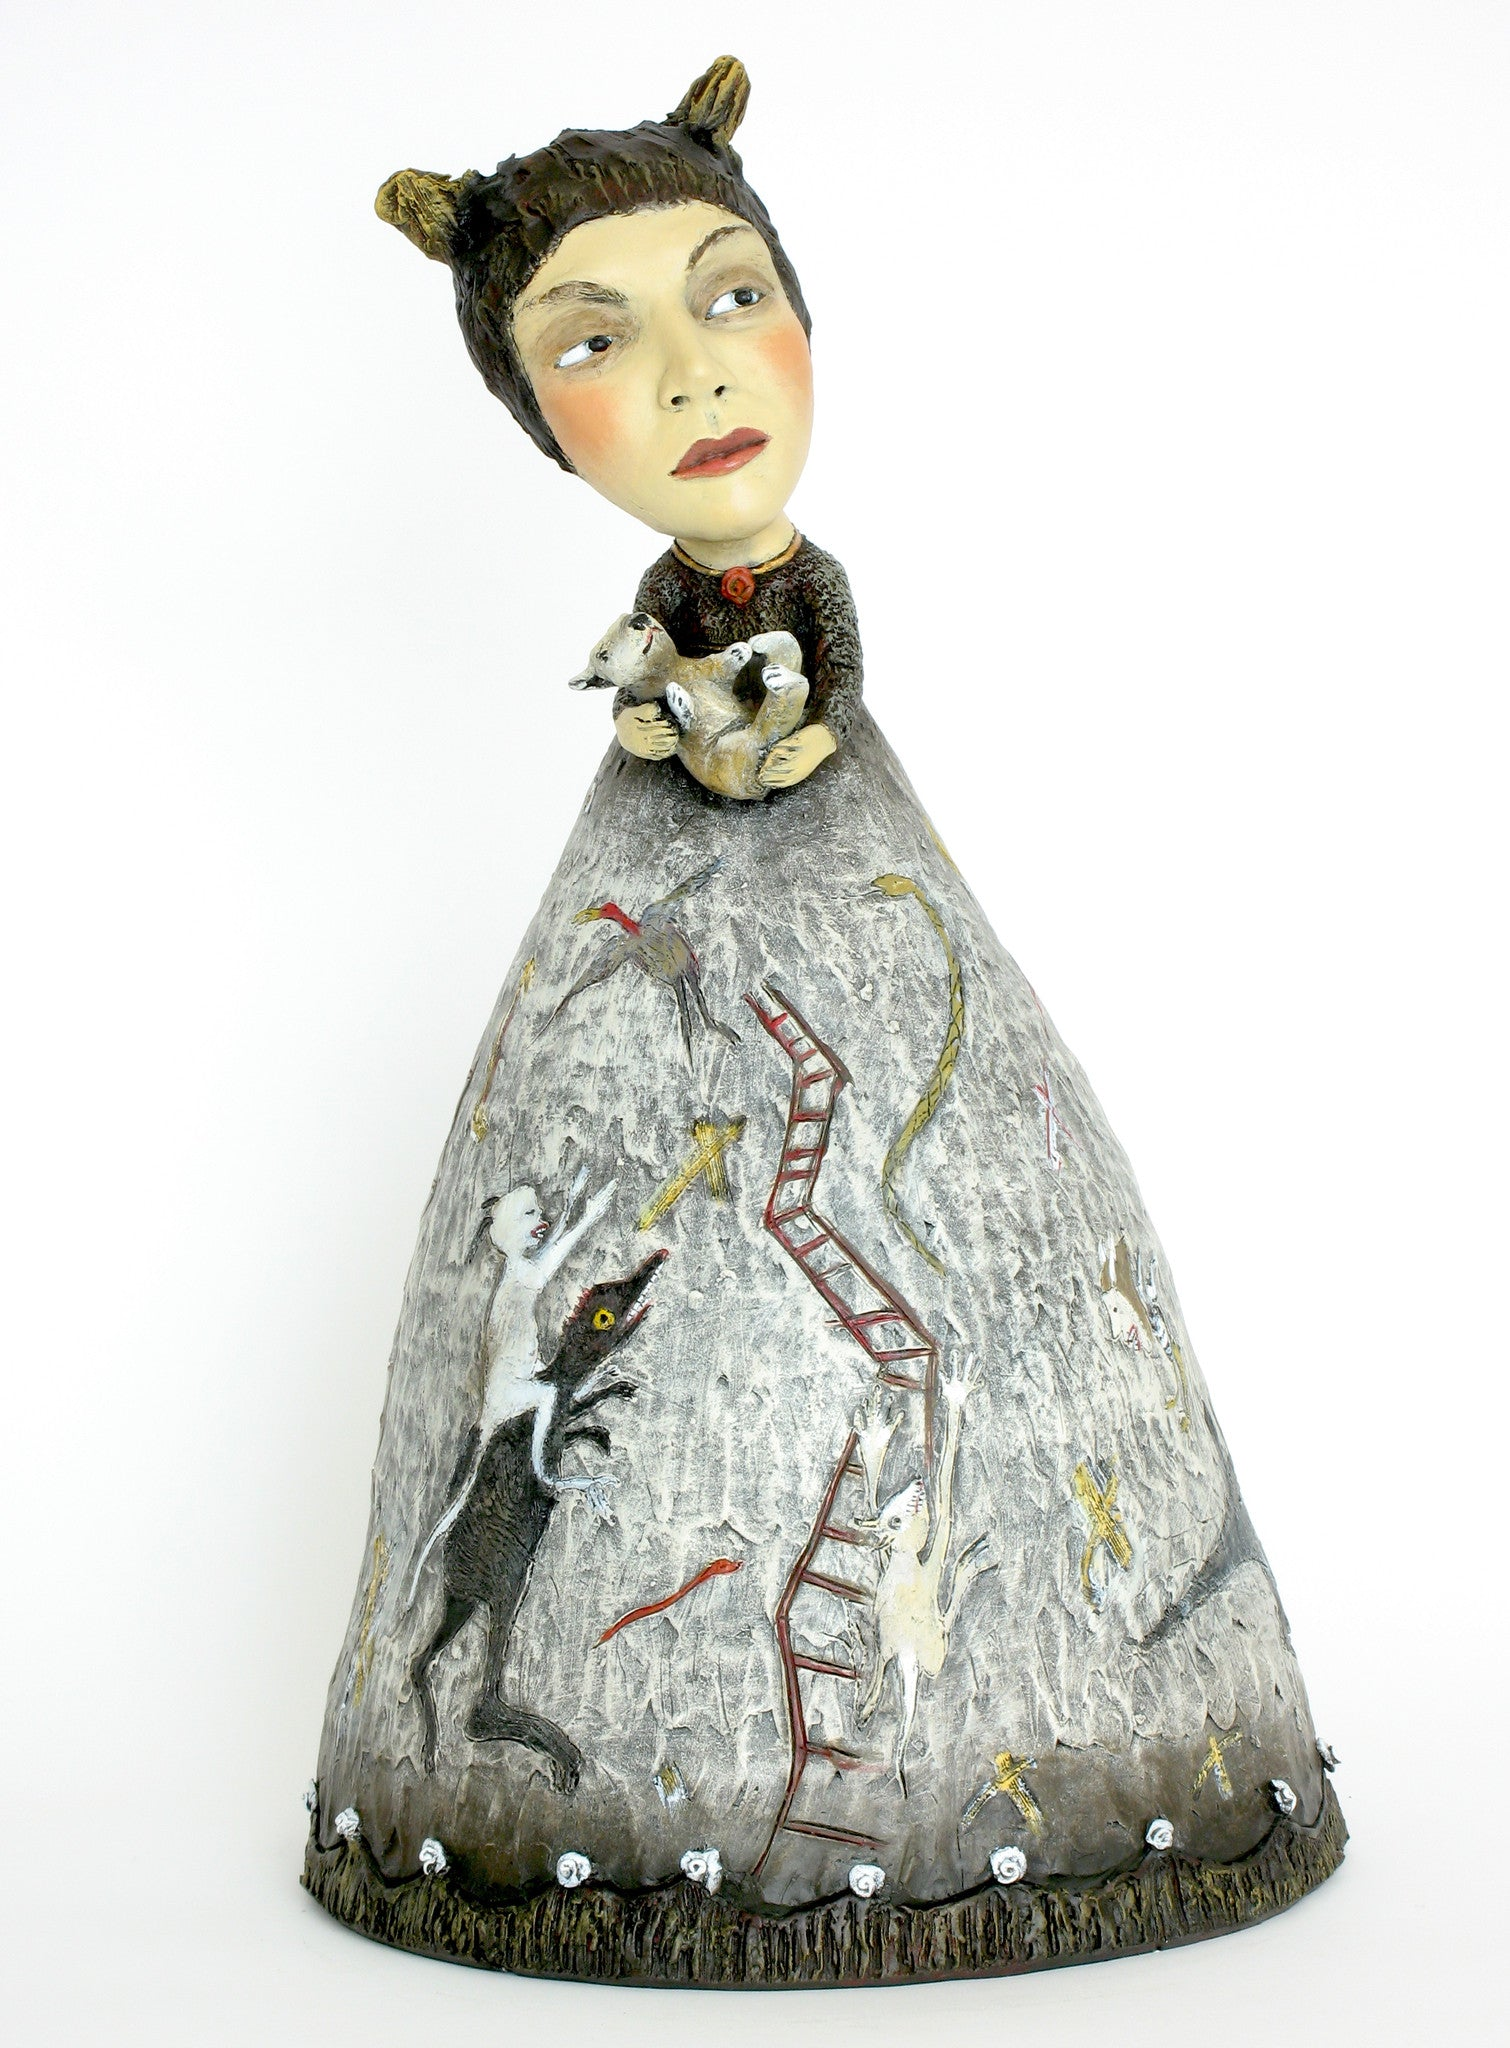 """letting My Little Monsters Out to Play"" original ceramic sculpture by Jacquline Hurlbert"